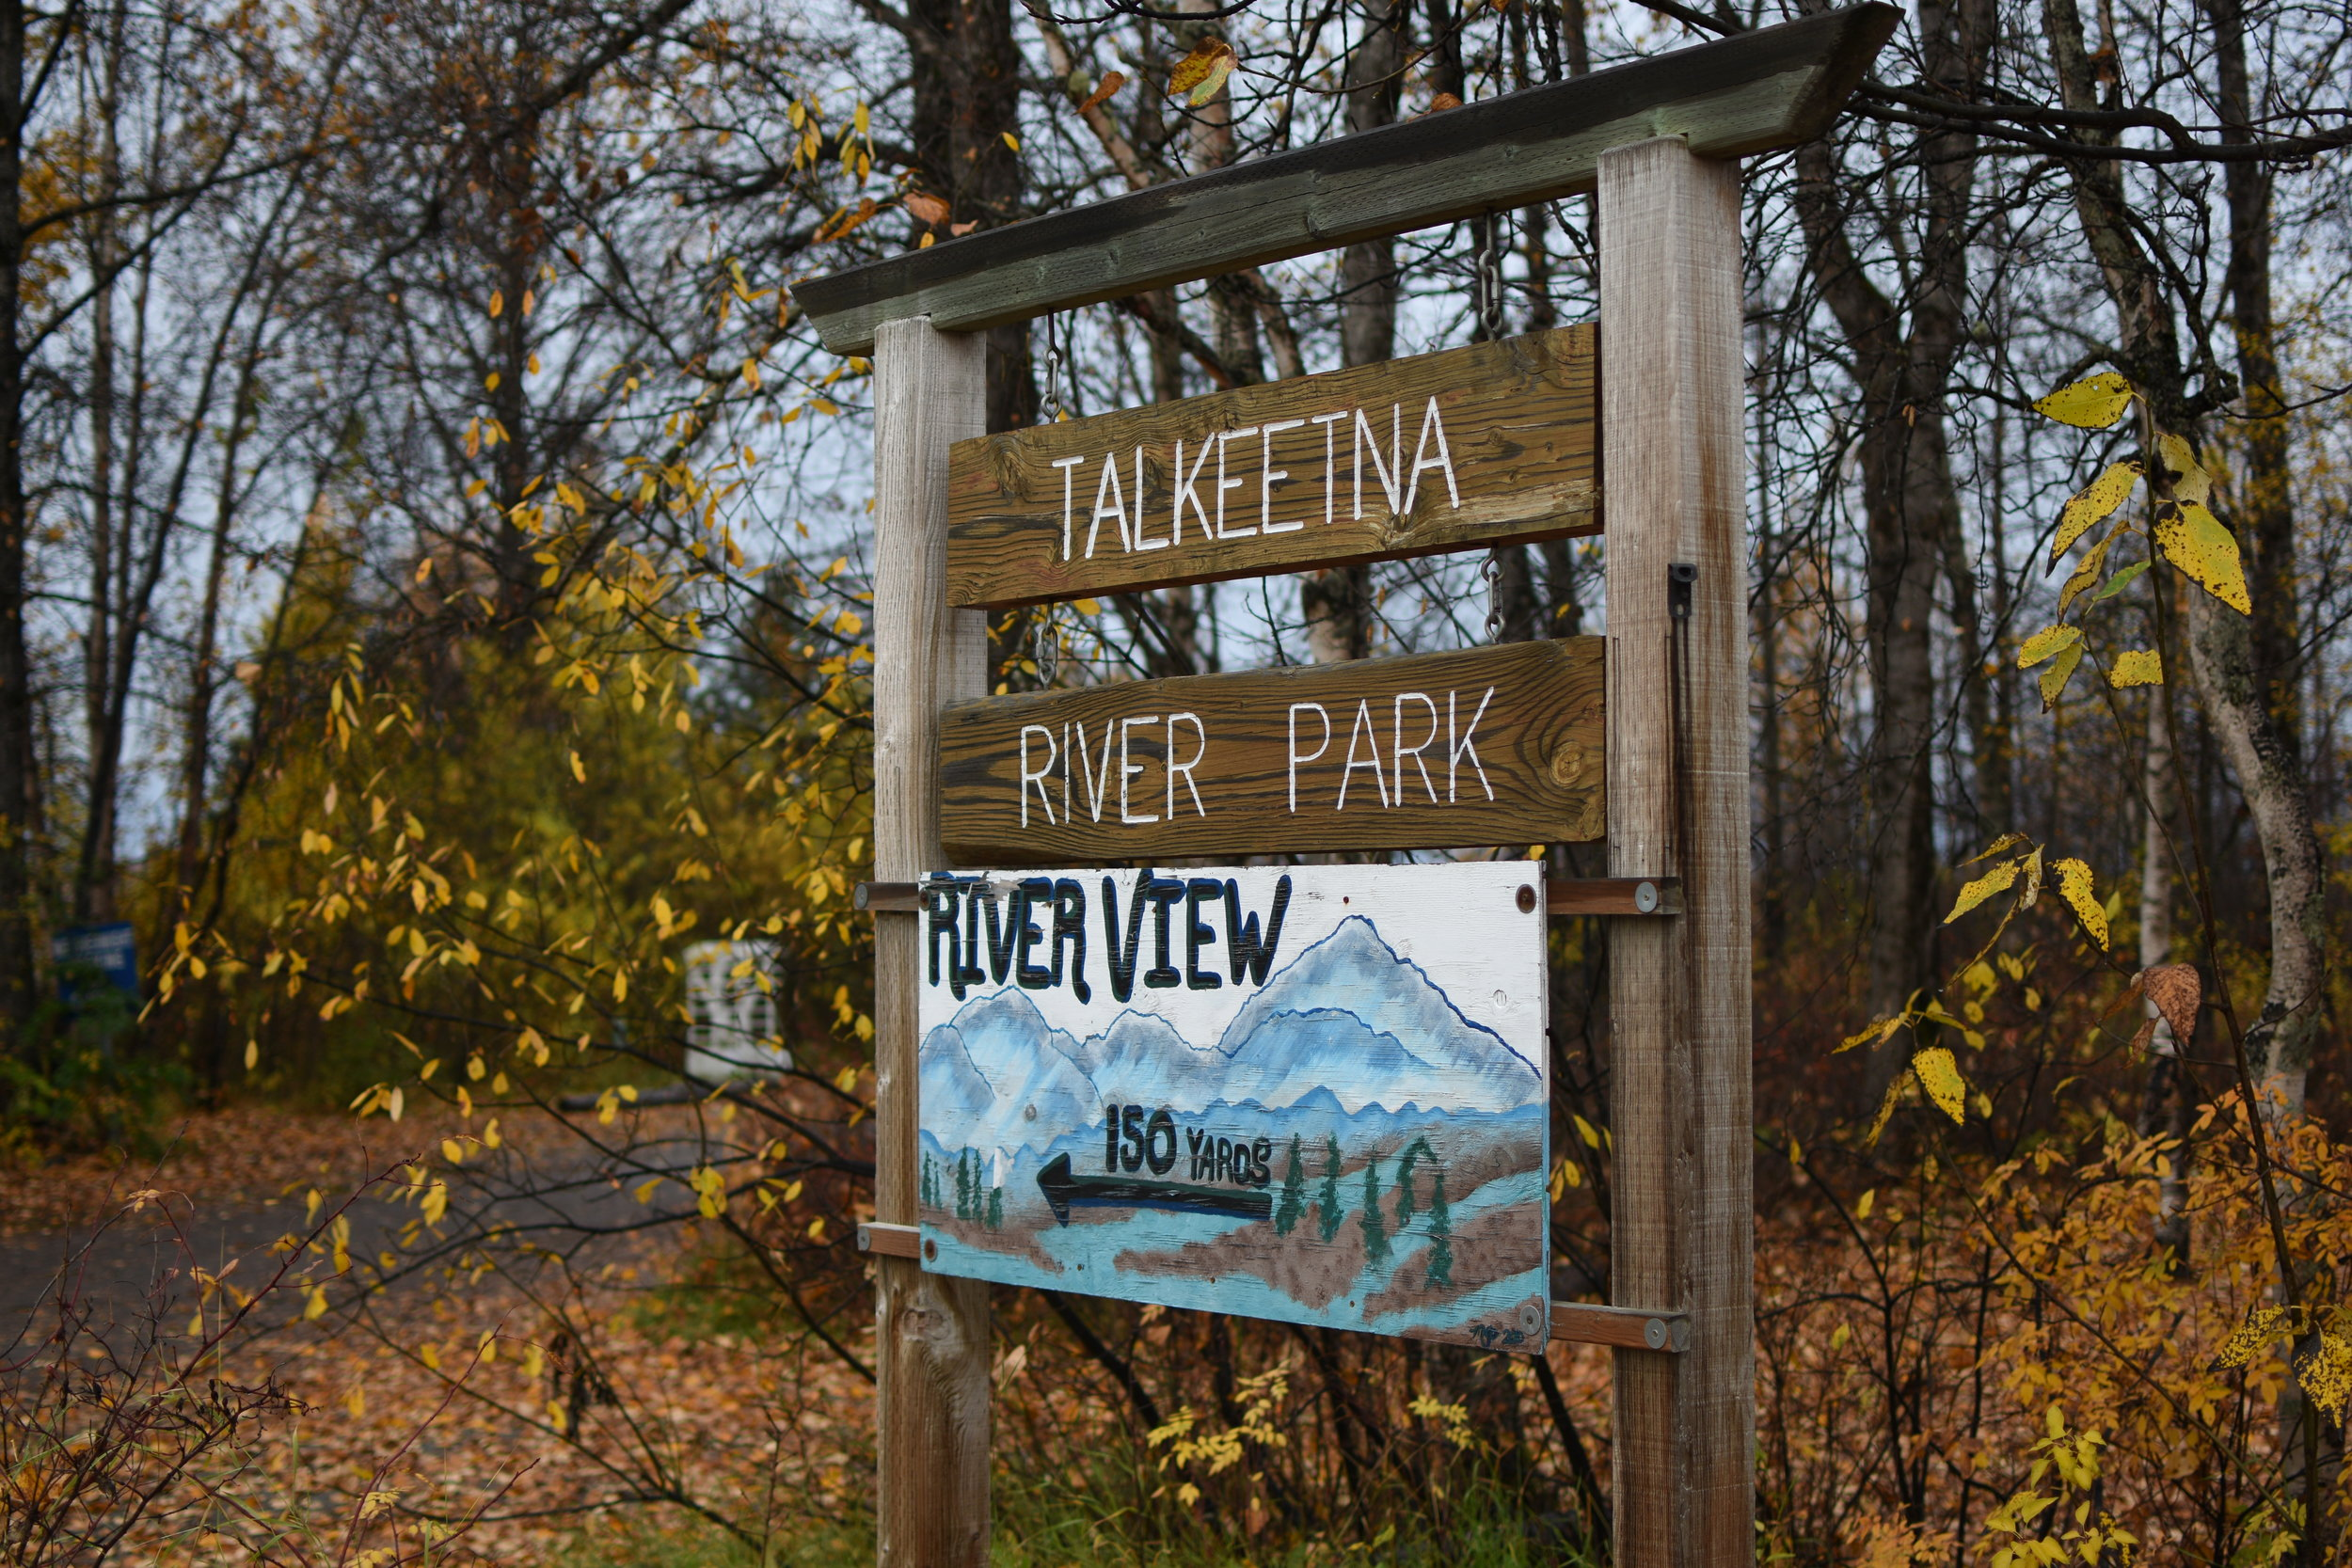 Talkeetna River Park in the heart of Talkeetna, AK.